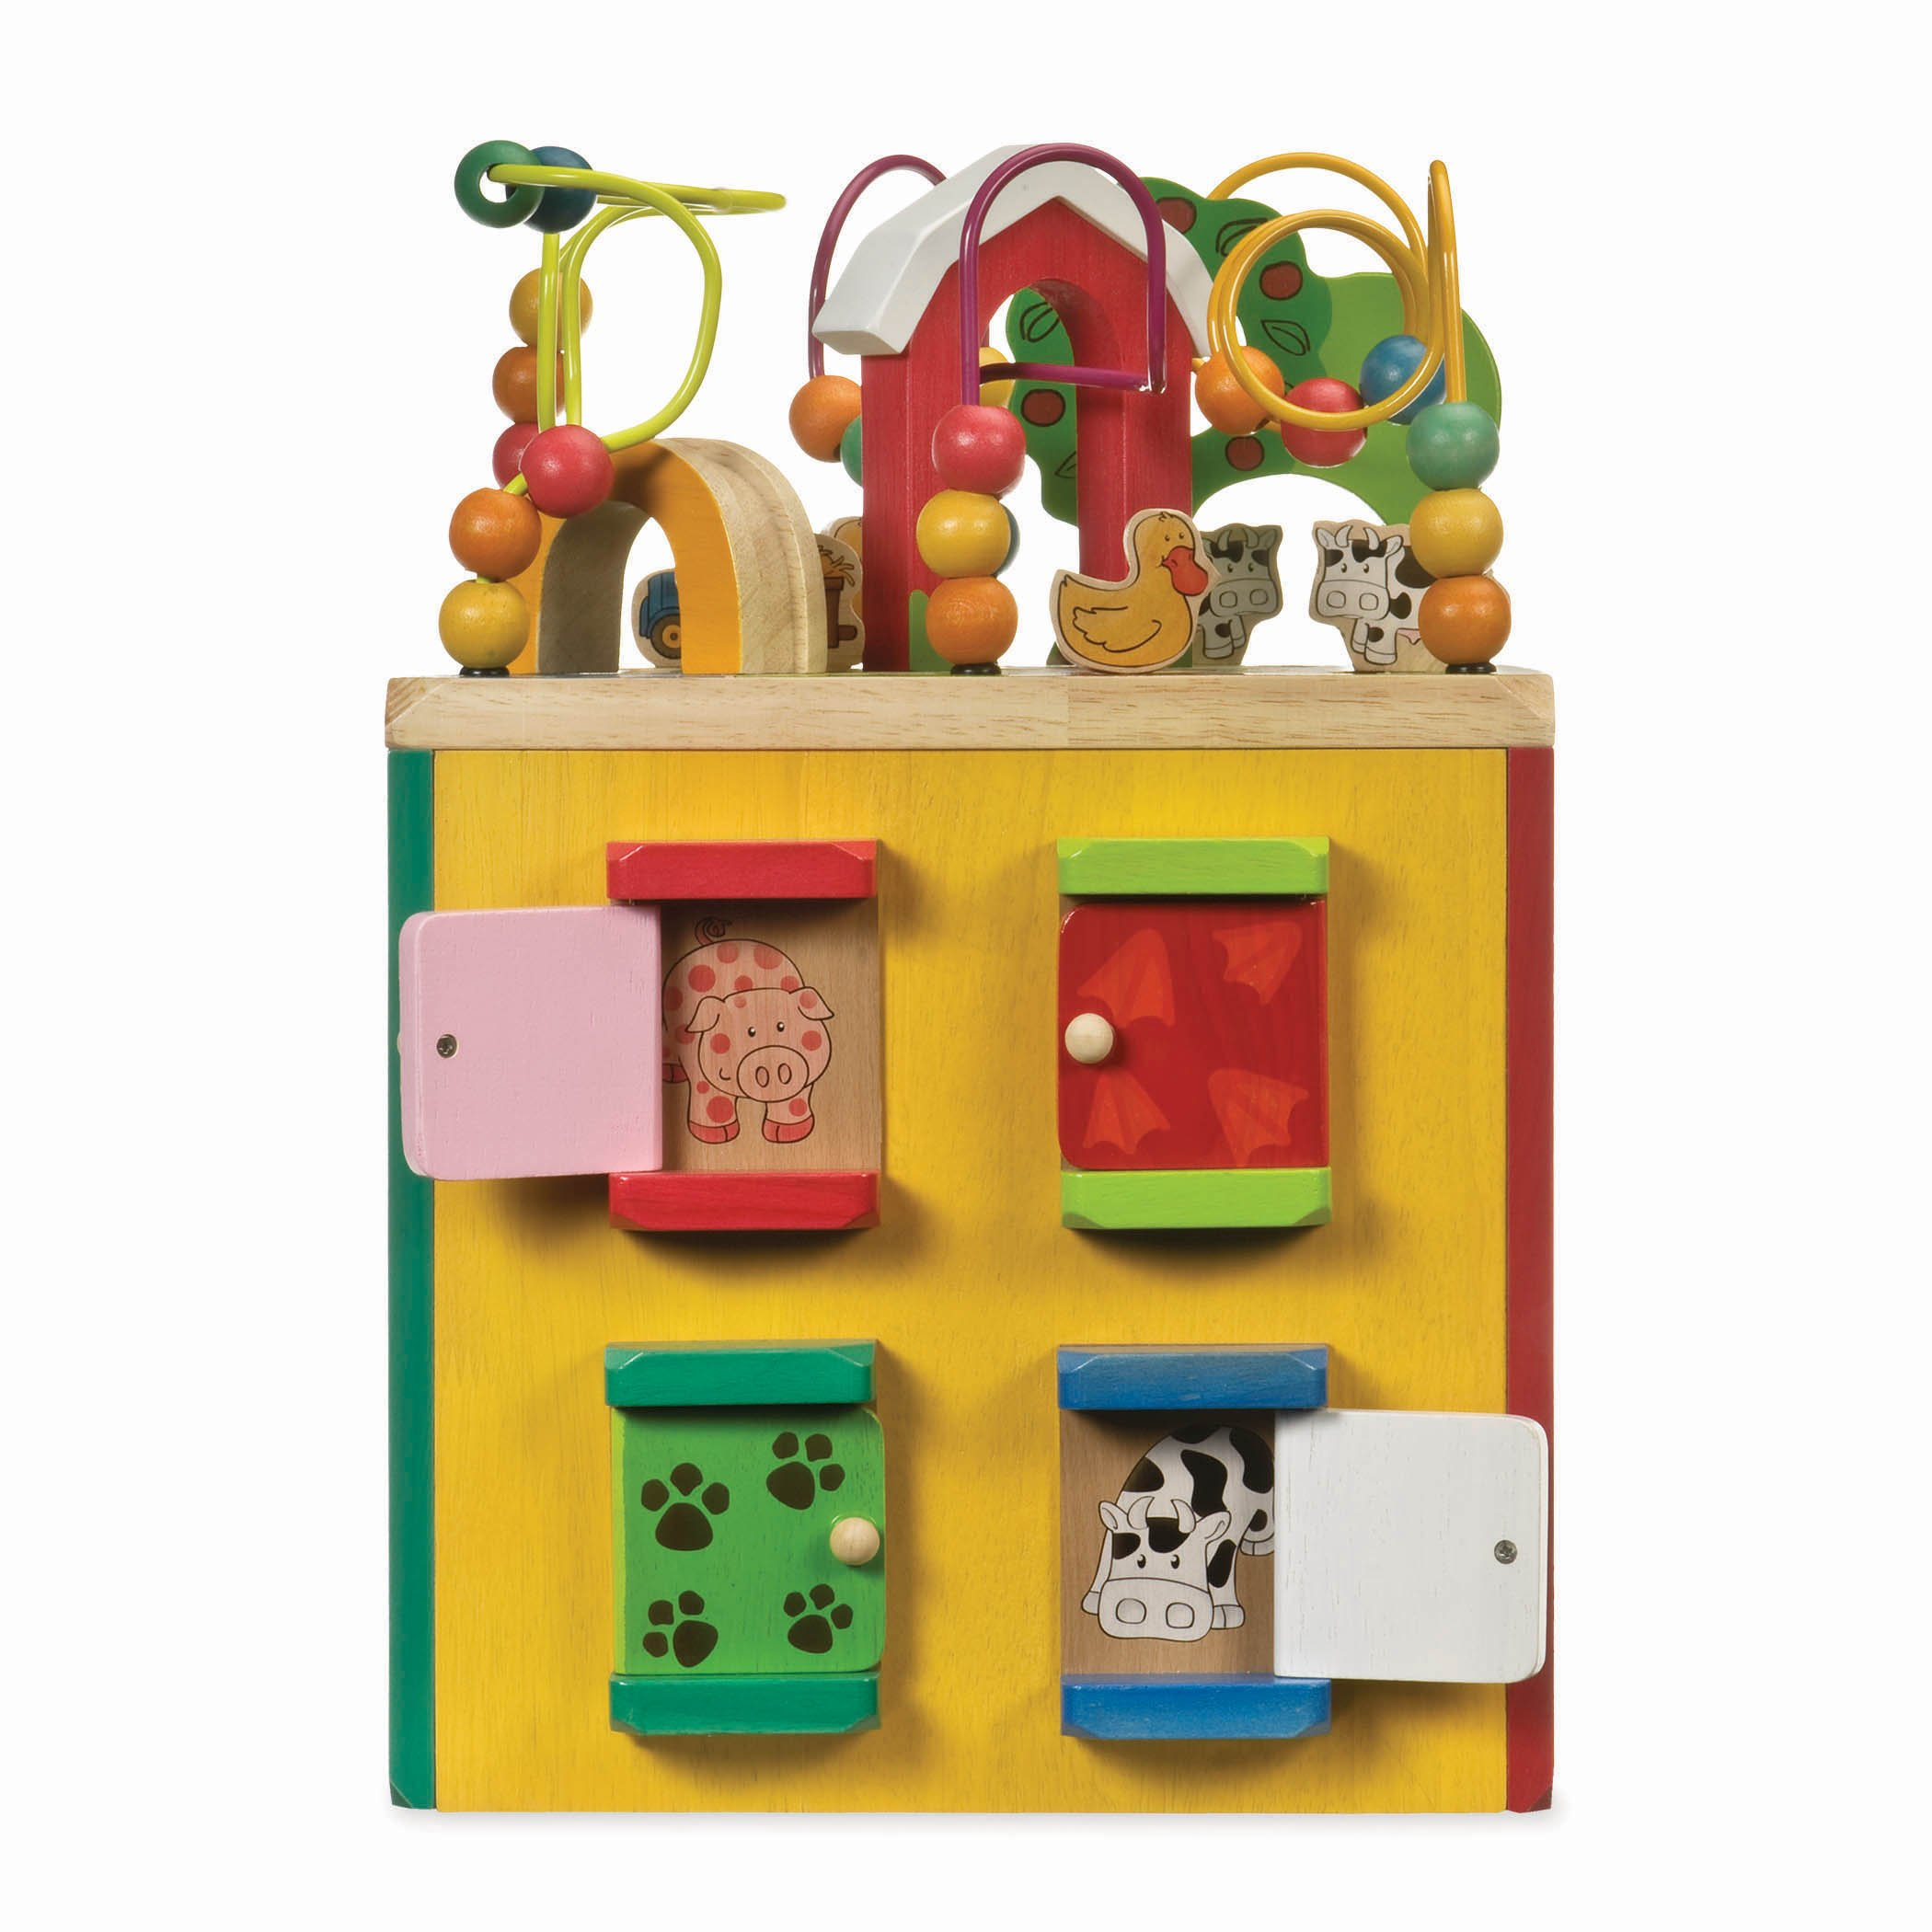 Battat - Wooden Activity Cube - Discover Farm Animals Activity Center for Kids 1 year + by Battat (Image #6)